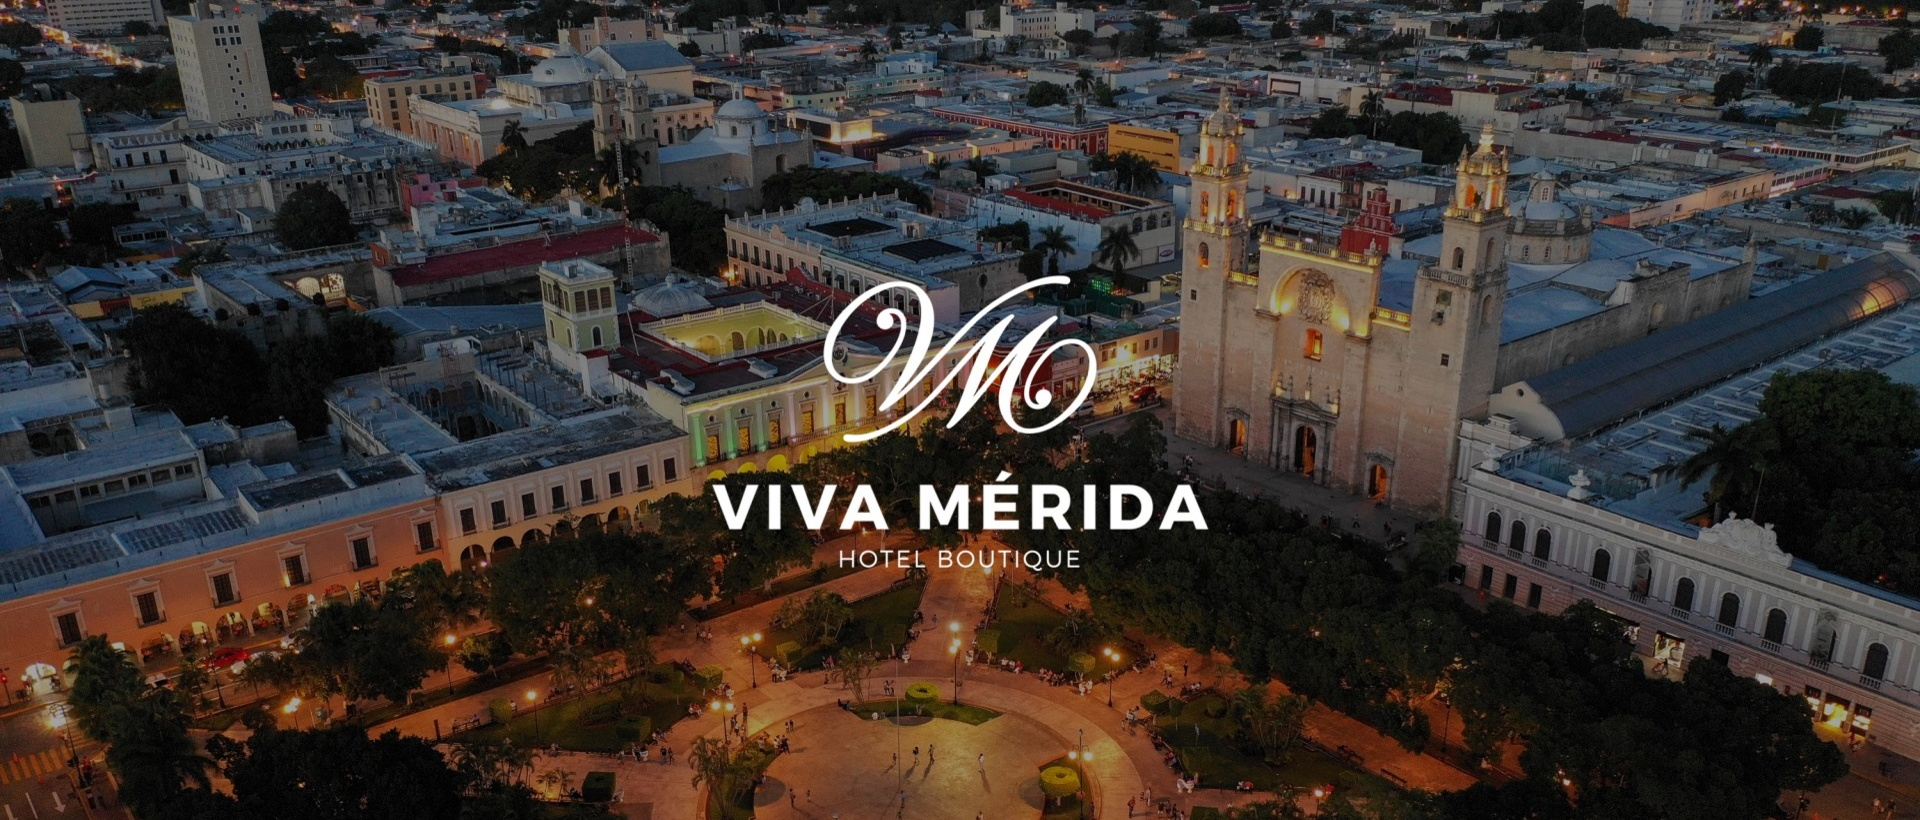 Viva Mérida Hotel Boutique